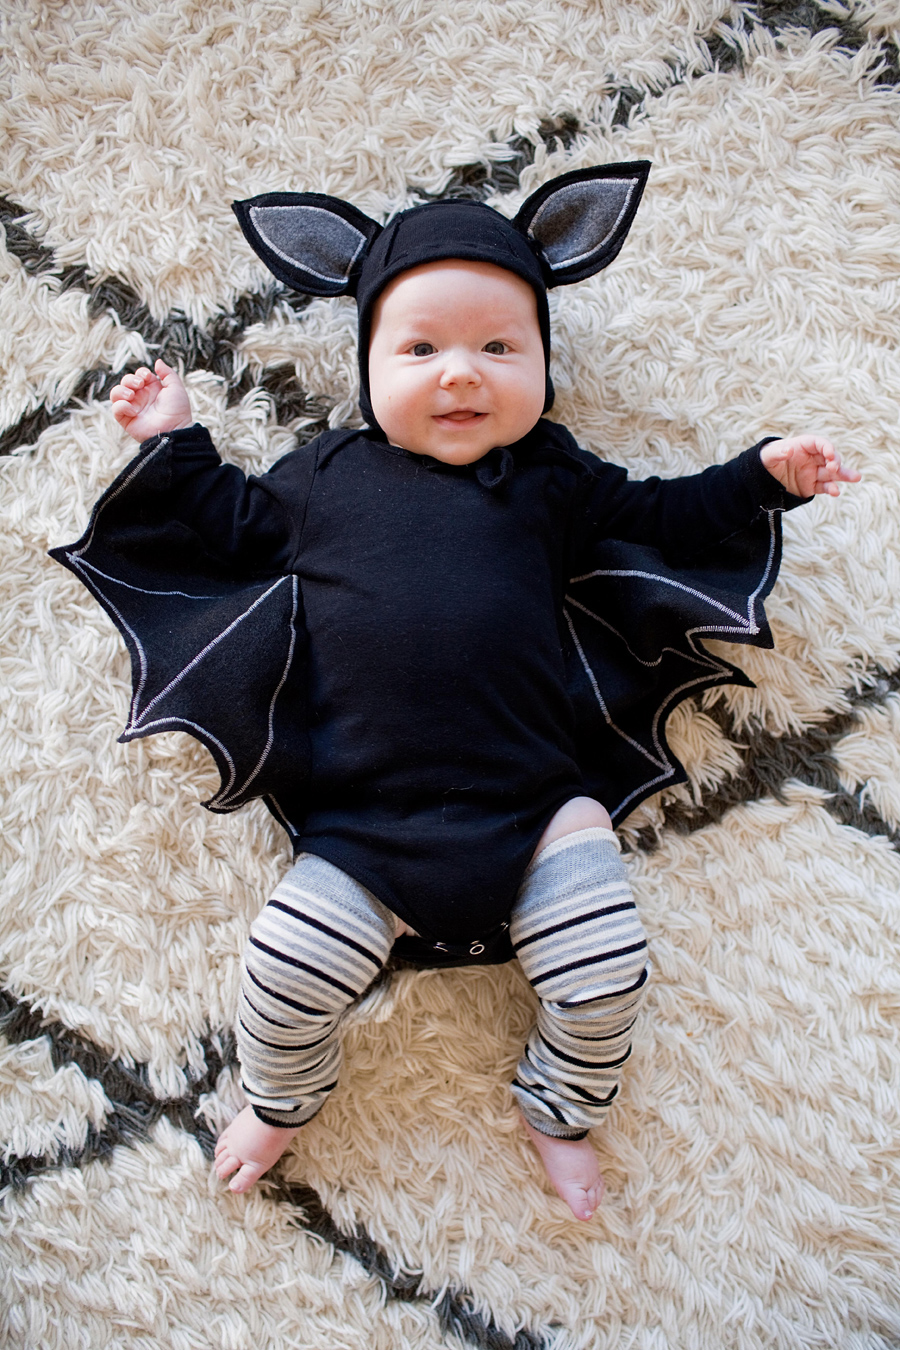 30 cute baby halloween costumes 2017 best ideas for boy and girl infant and toddler costumes - Halloween Costume For Baby Girls